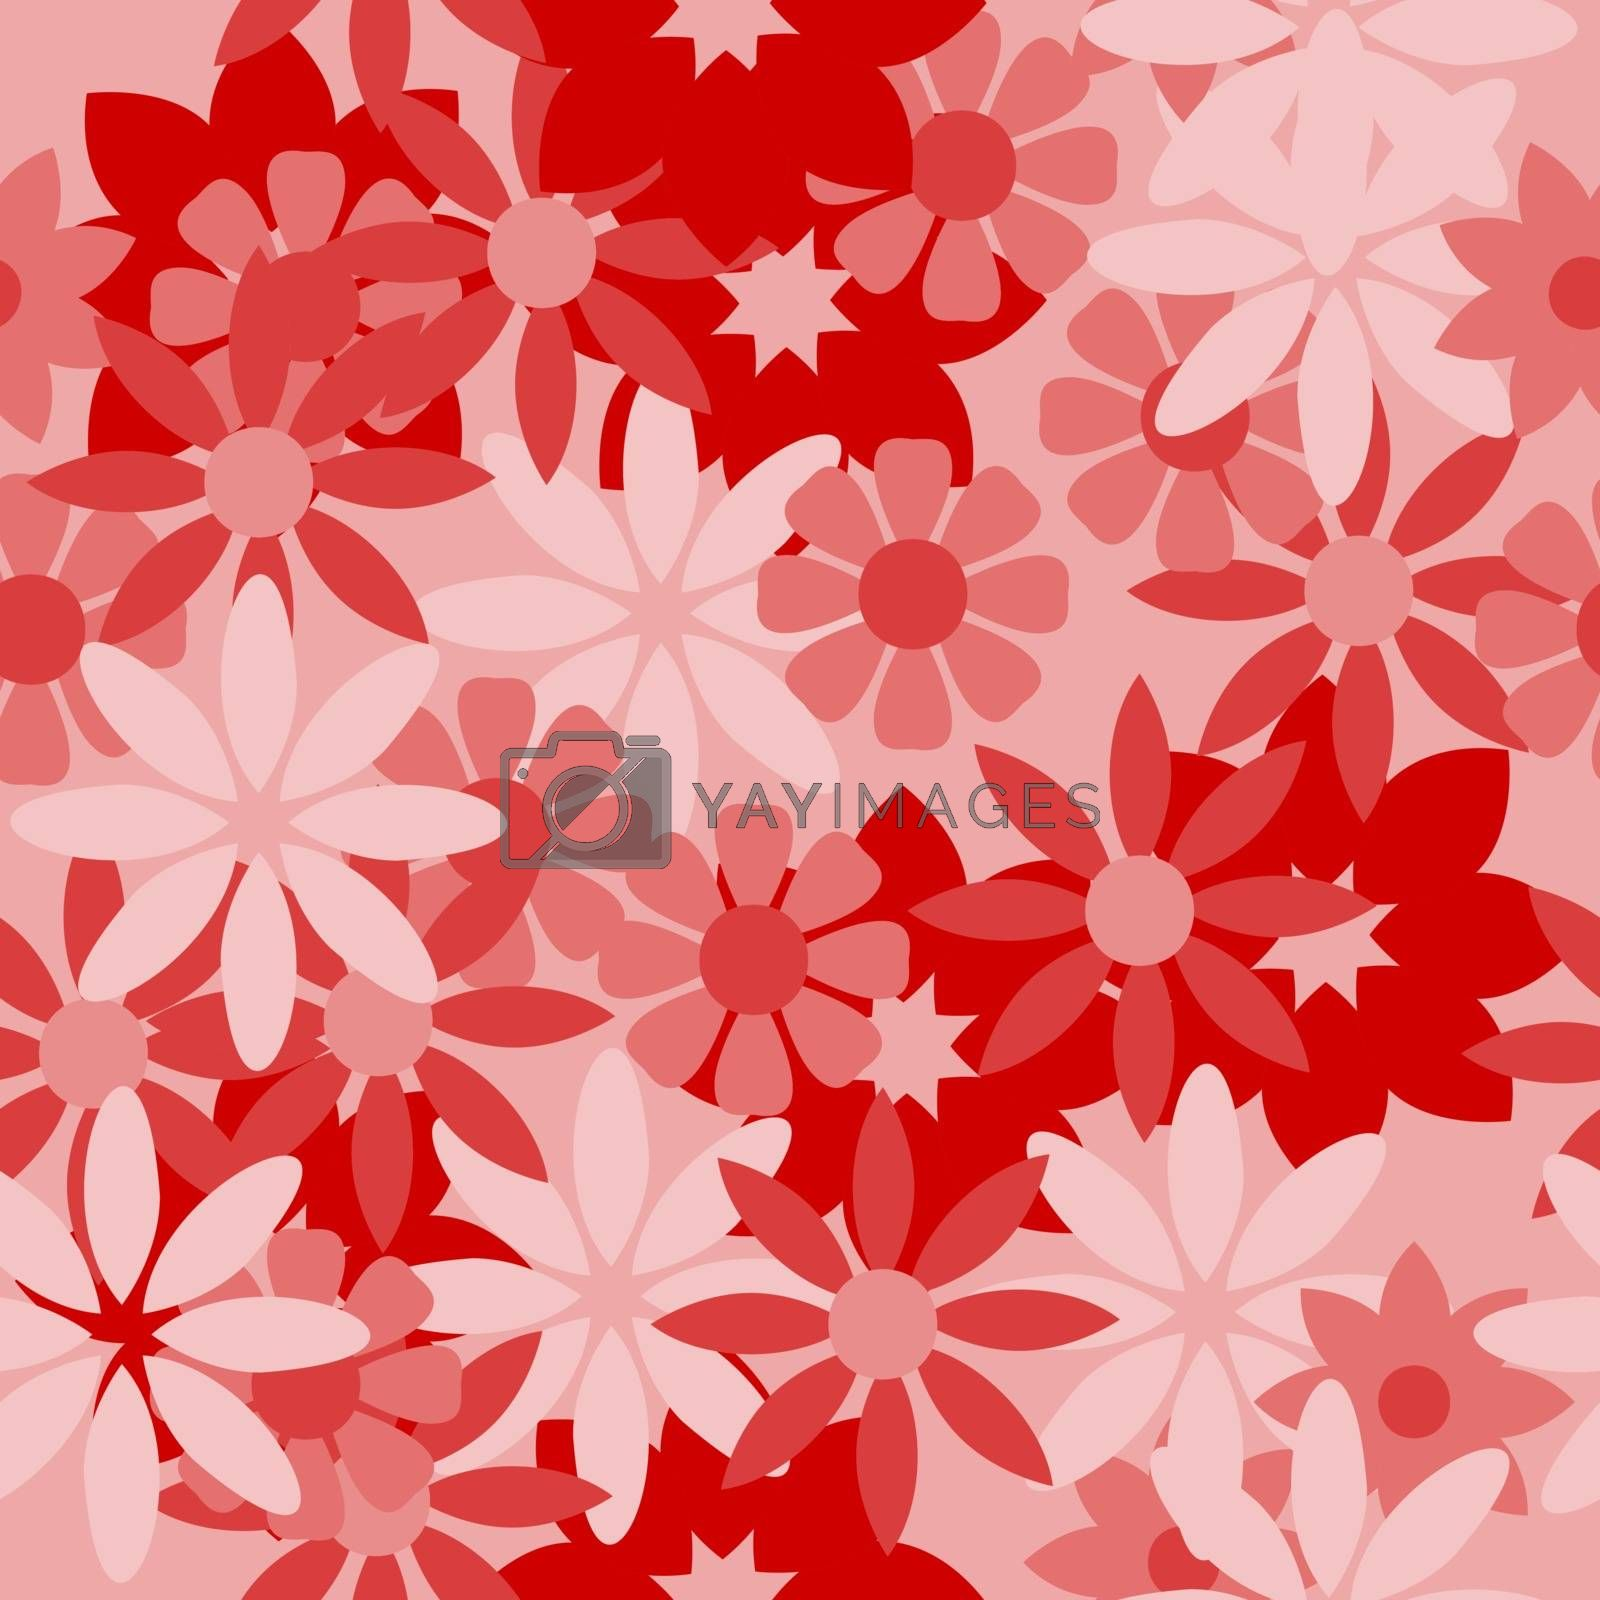 Floral pattern with abstract flowers.Ethnic endless background with ornamental decorative elements with traditional etnic motives, tribal geometric figures. Print for wrapping, background.  Use for wallpaper,pattern fills, web page background